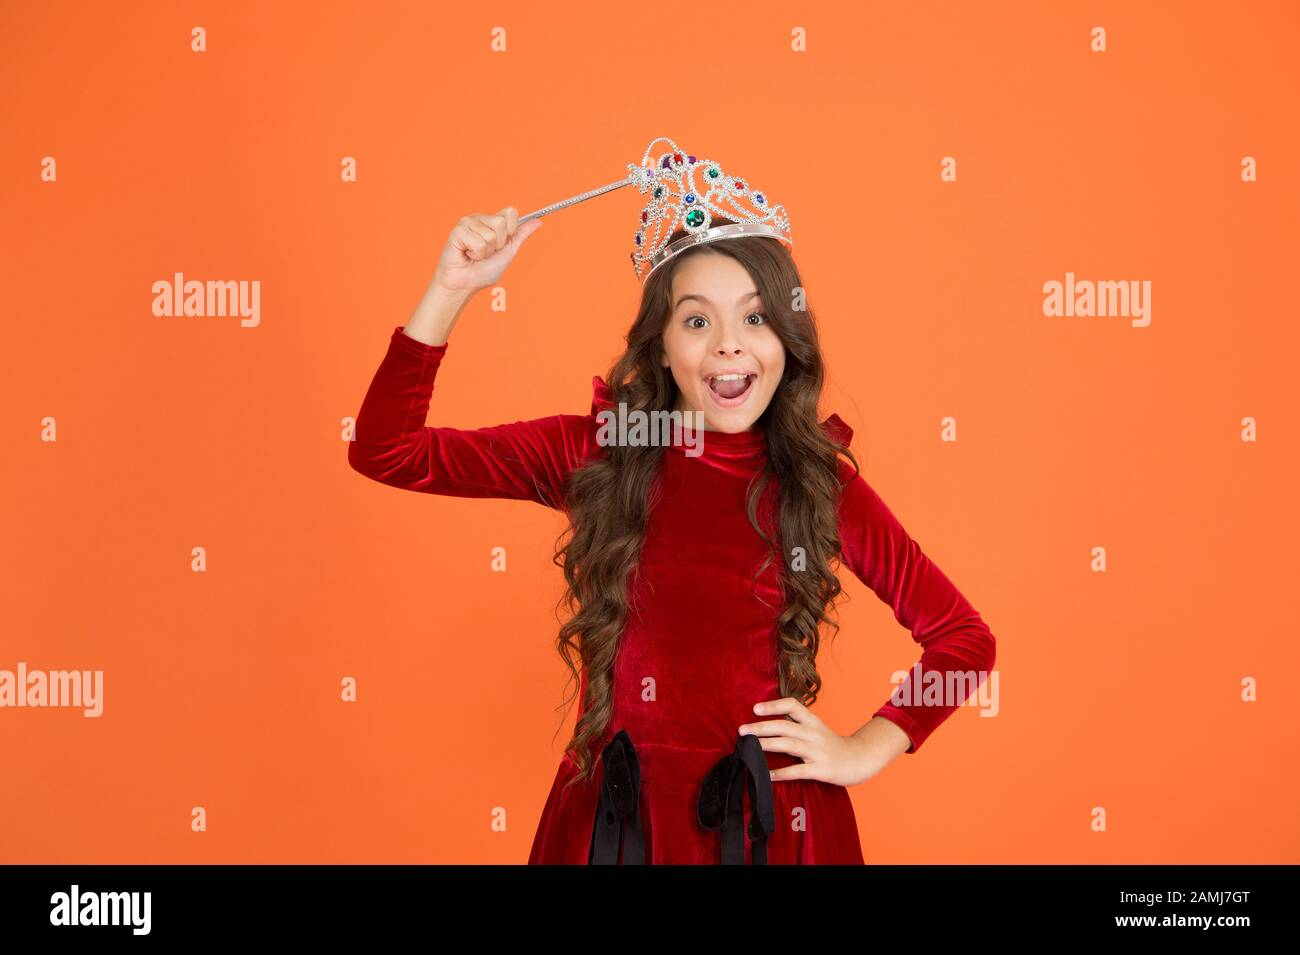 Indulge yourself in Luxury. royal and luxury. happy girl long curly hair in crown. little princess hold magic wand. magic queen from fairytale. just make a wish. all dreams come true. airs and graces. Stock Photo